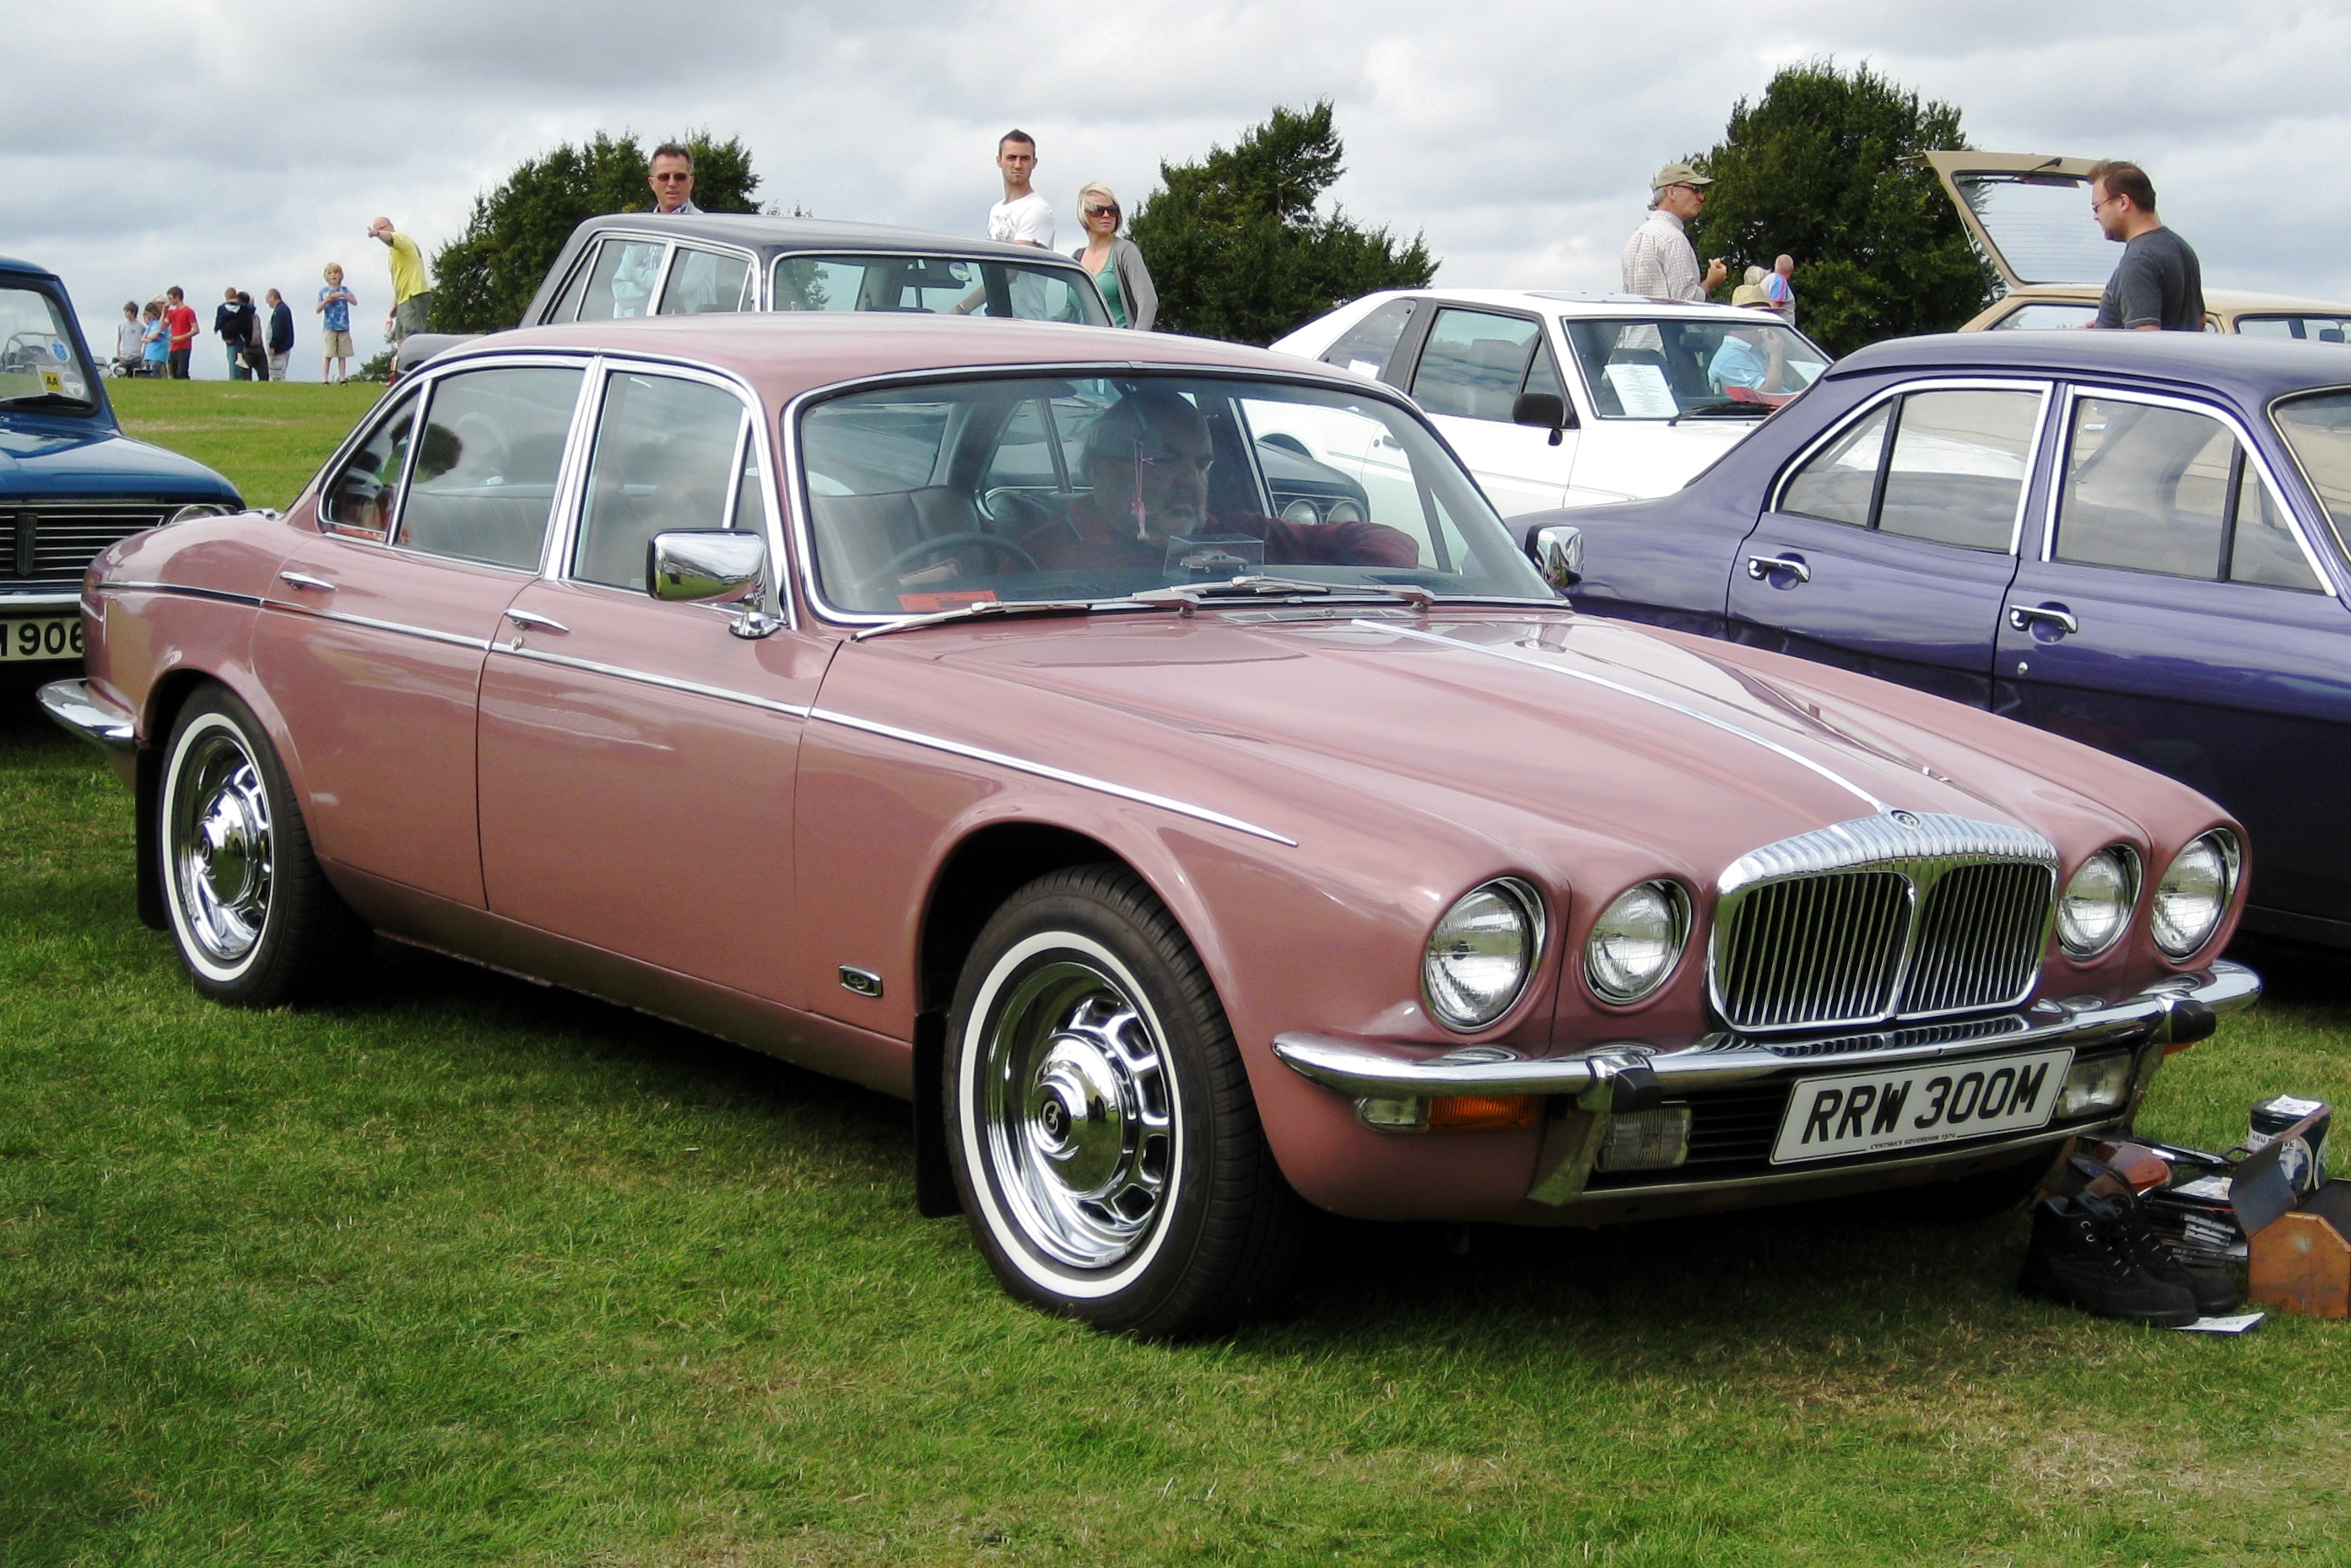 file daimler sovereign based on xj6 series ii 4325cc first rh commons wikimedia org